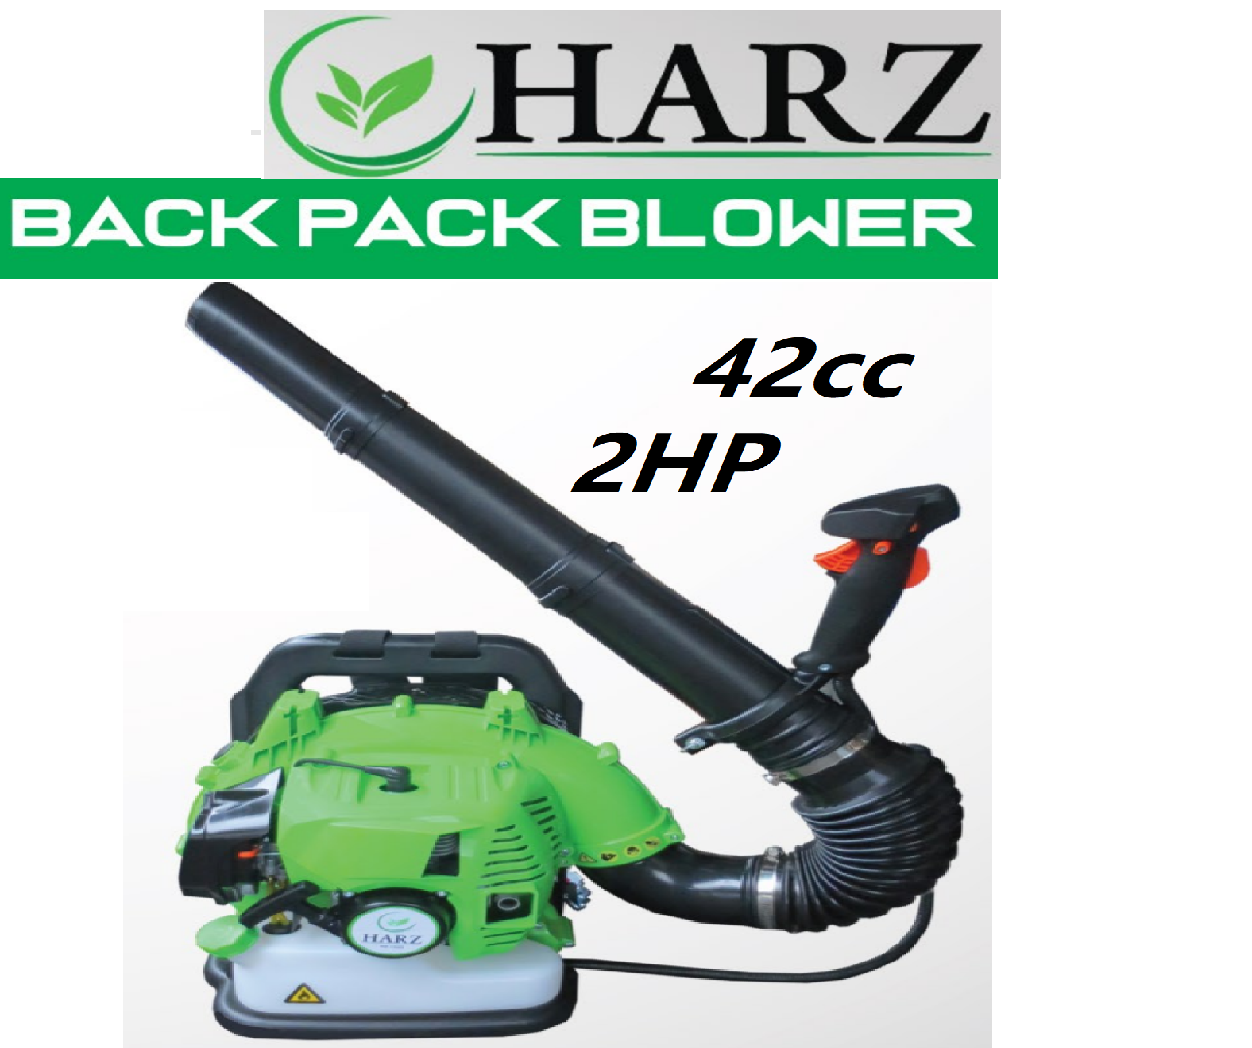 HARZ 2hp 42cc engine turbo back pack hand air blower fan blade fly exhaust cleaner leaf tree back pack power garden up out vacuum high pressure press force lawm jet starter nozzle hose set gasoline petrol potable carry take flow supply roller tool machine